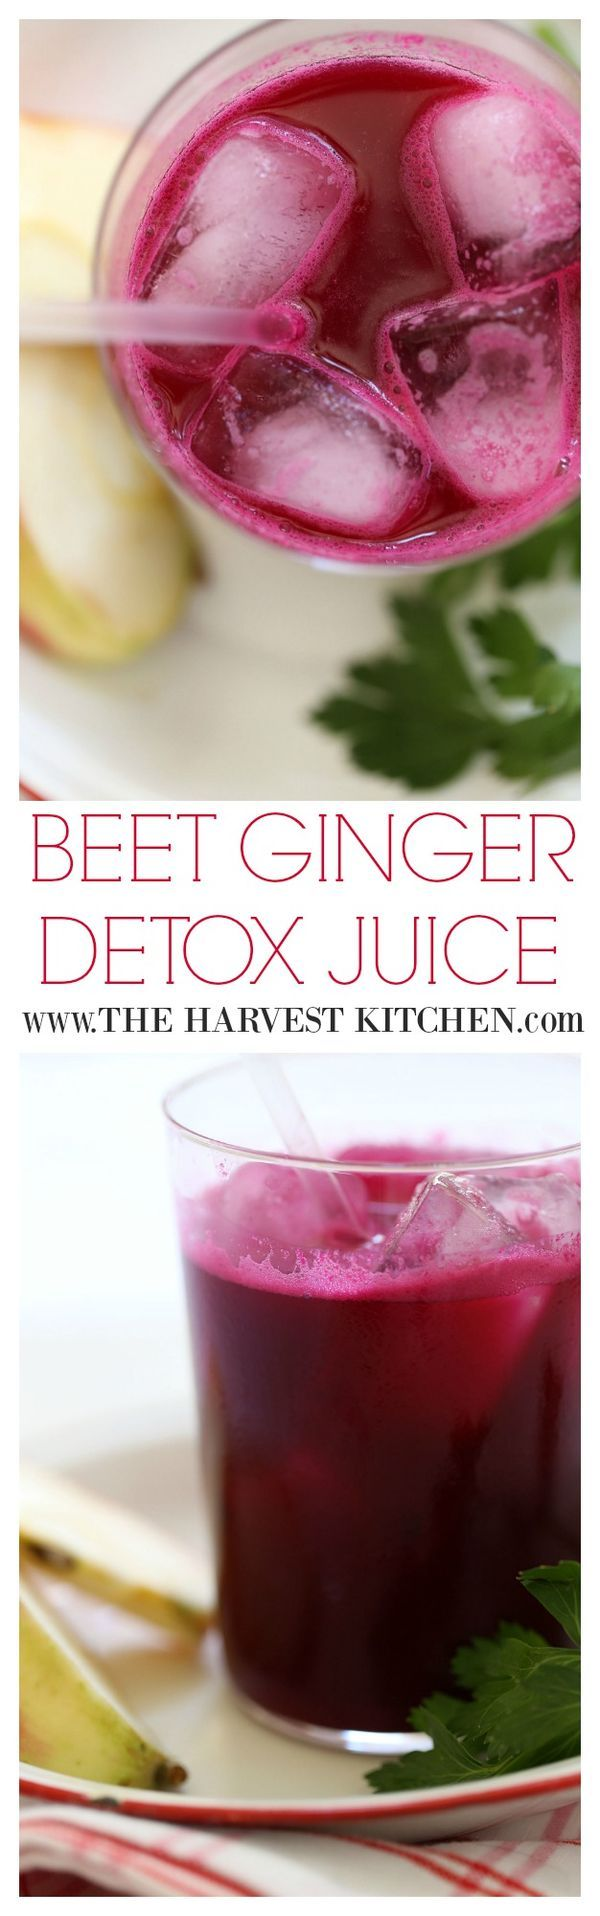 Beet juice is a powerful cleanser and highly nutritious. Apples, a whole lemon, fistful of parsley and ginger are juiced with a couple beets to create this deep red elixir.